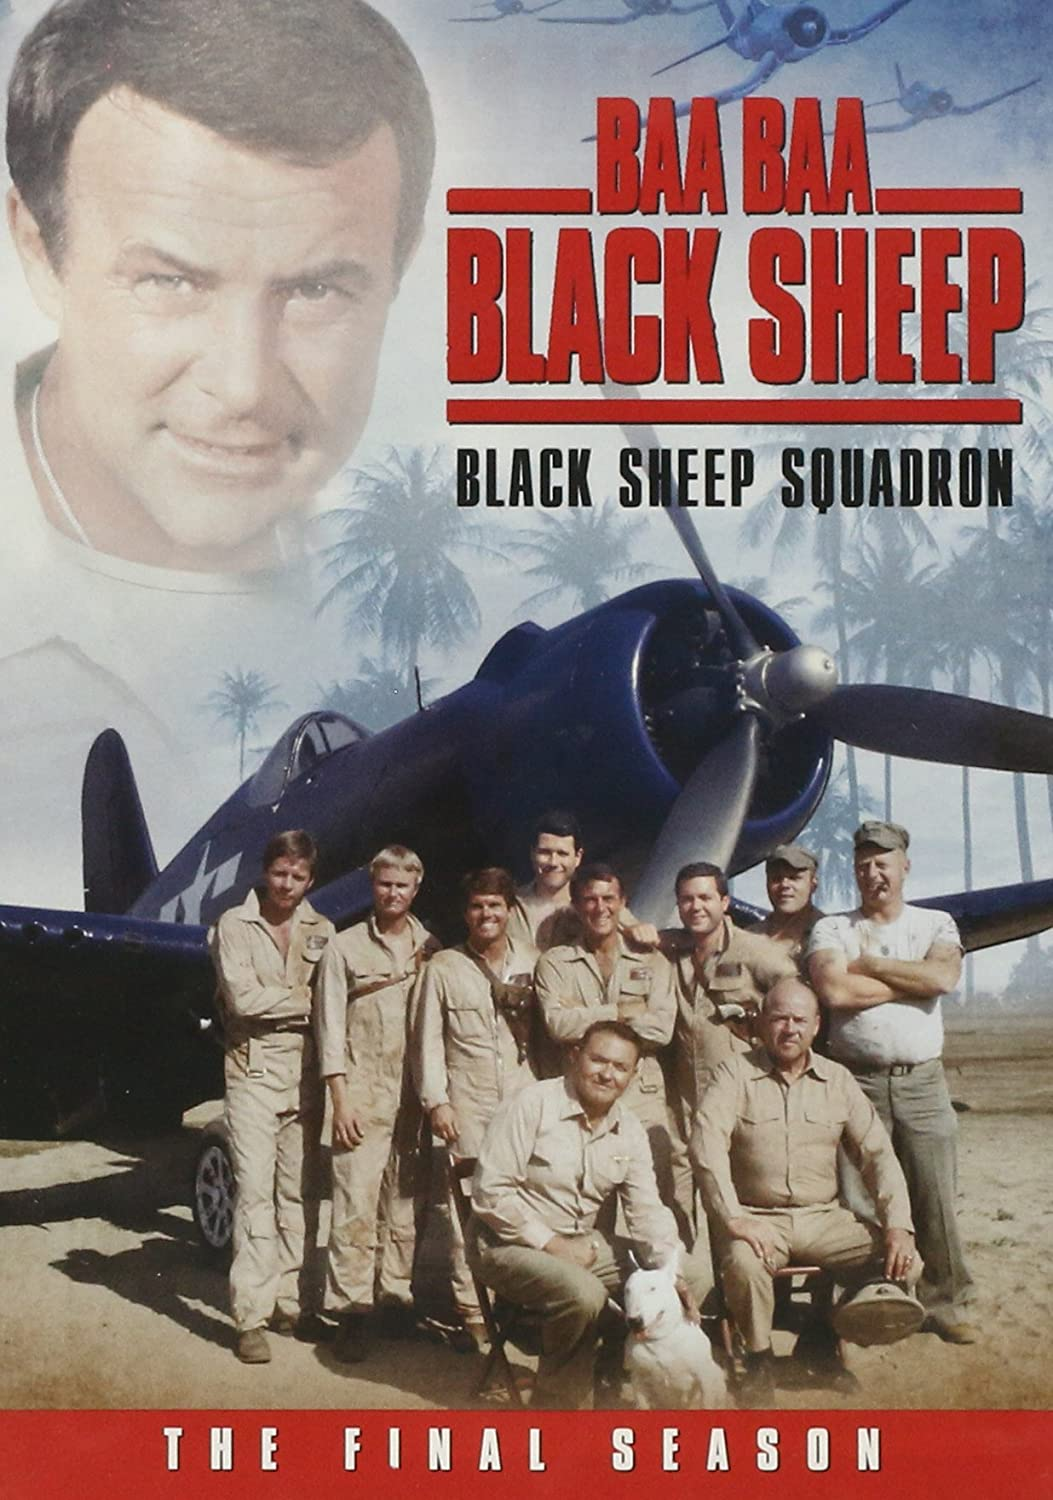 Image result for robert conrad in baba blacksheep